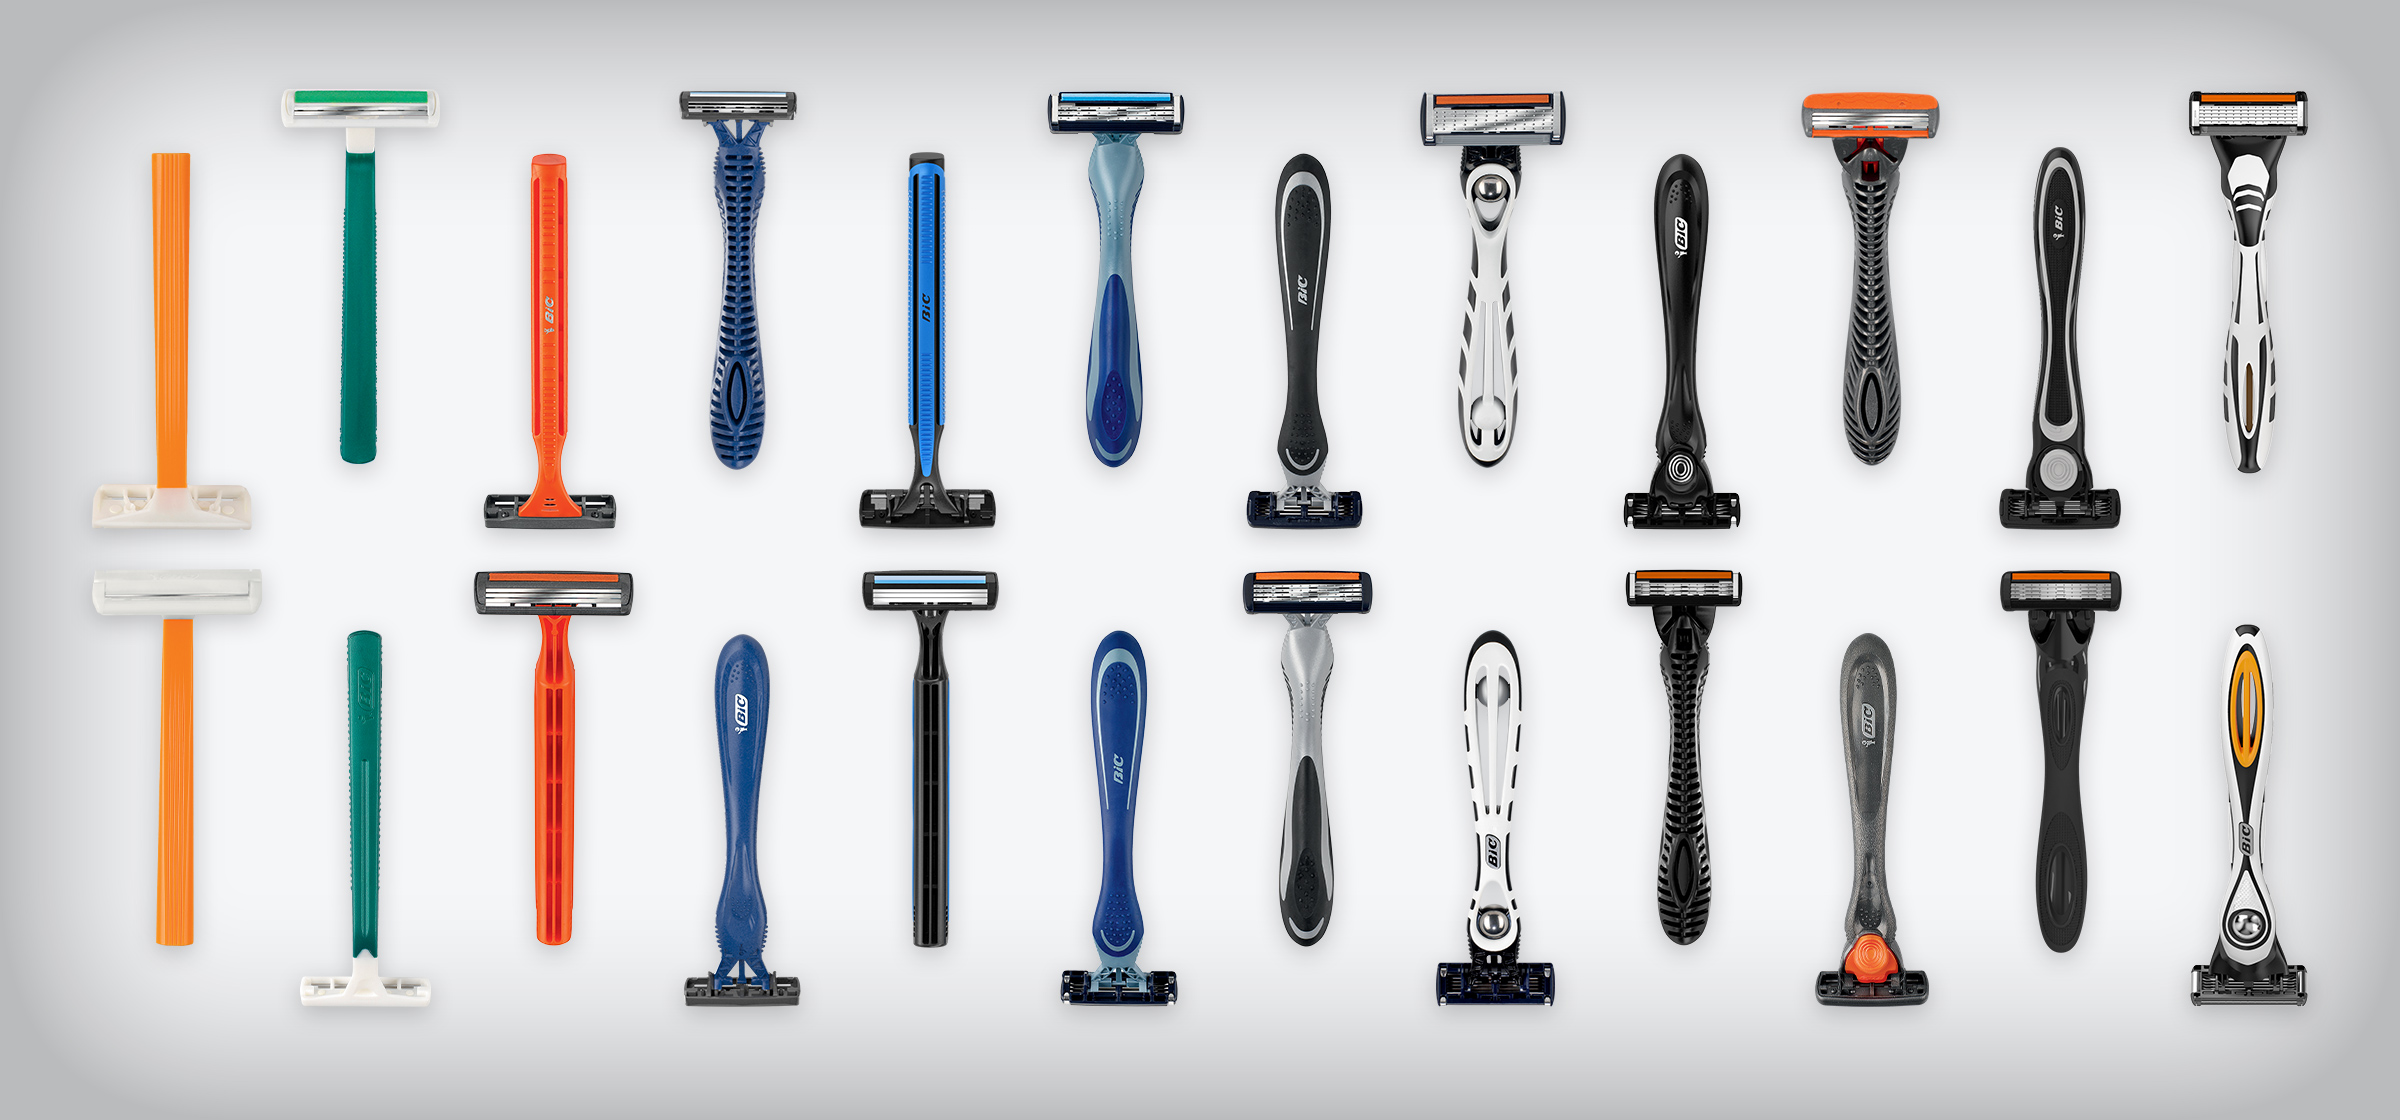 razors for men